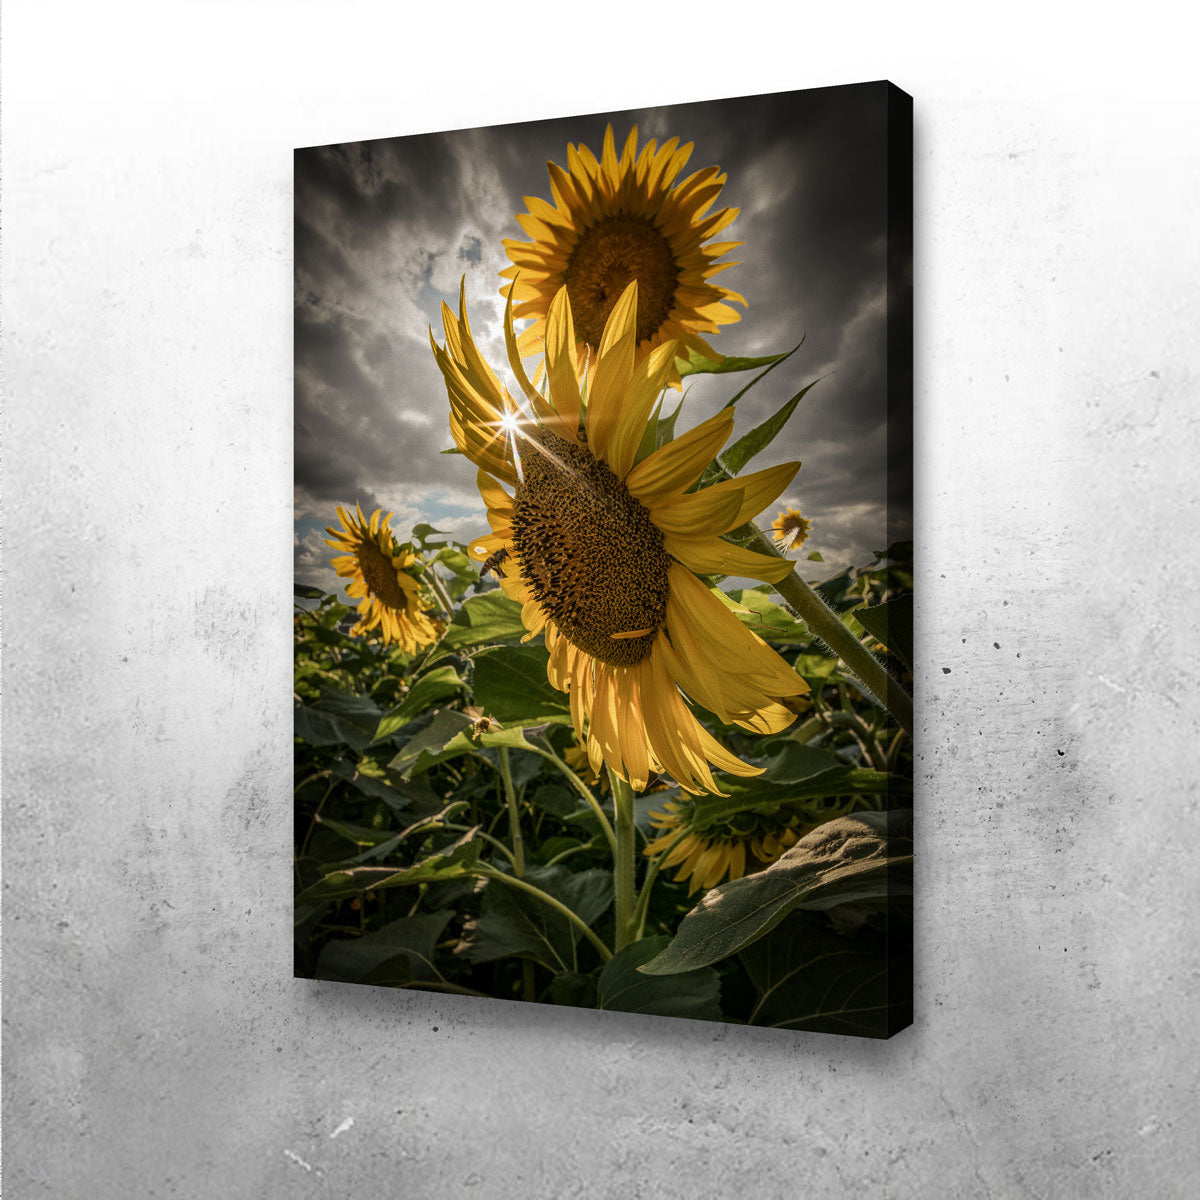 Cloudy Sunflowers